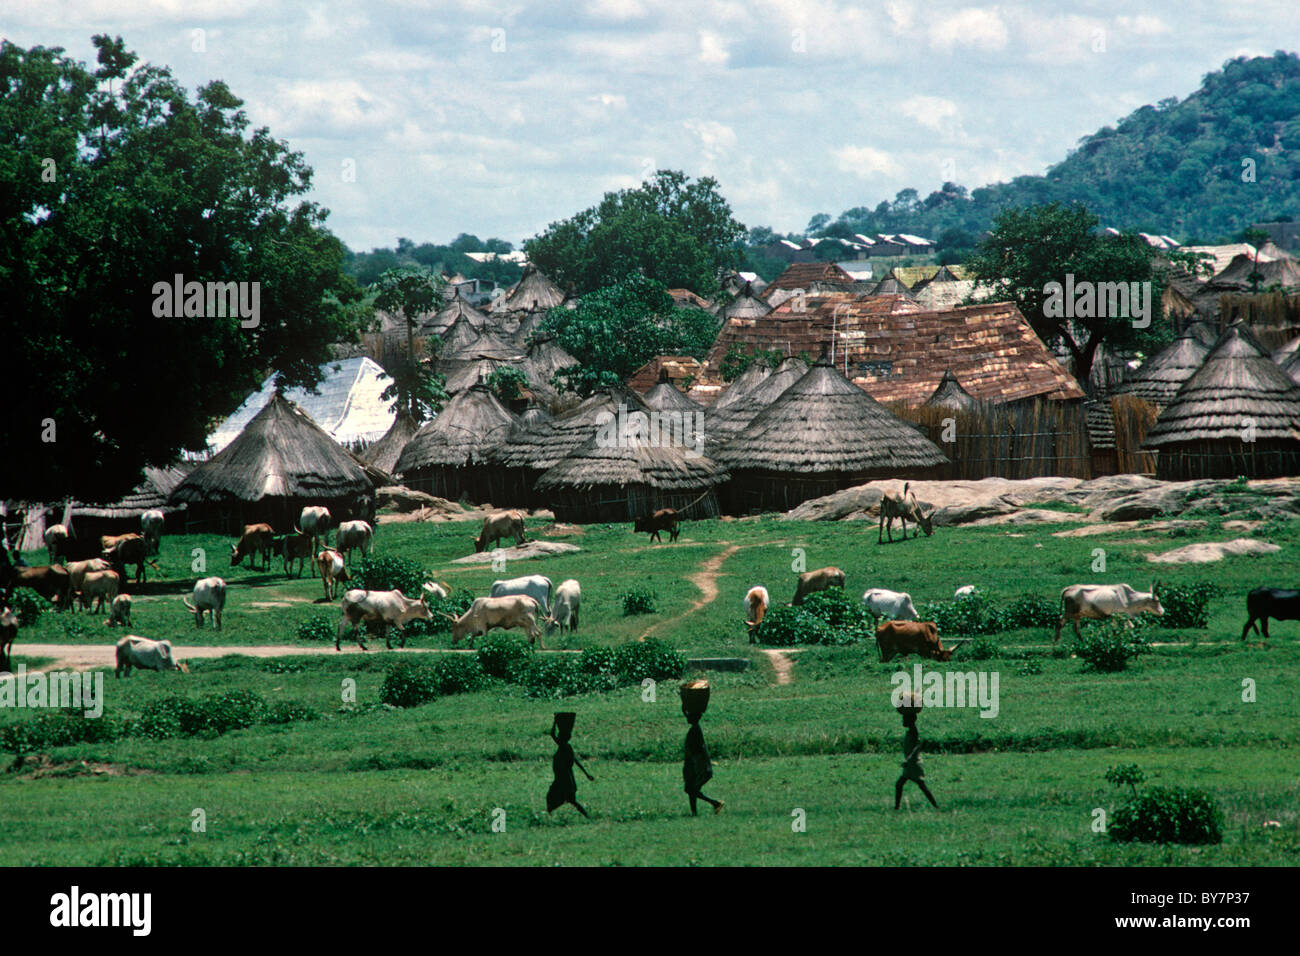 Typical housing around Juba, Southern Sudan. Life in this region has not changed much, development stymied by endless - Stock Image